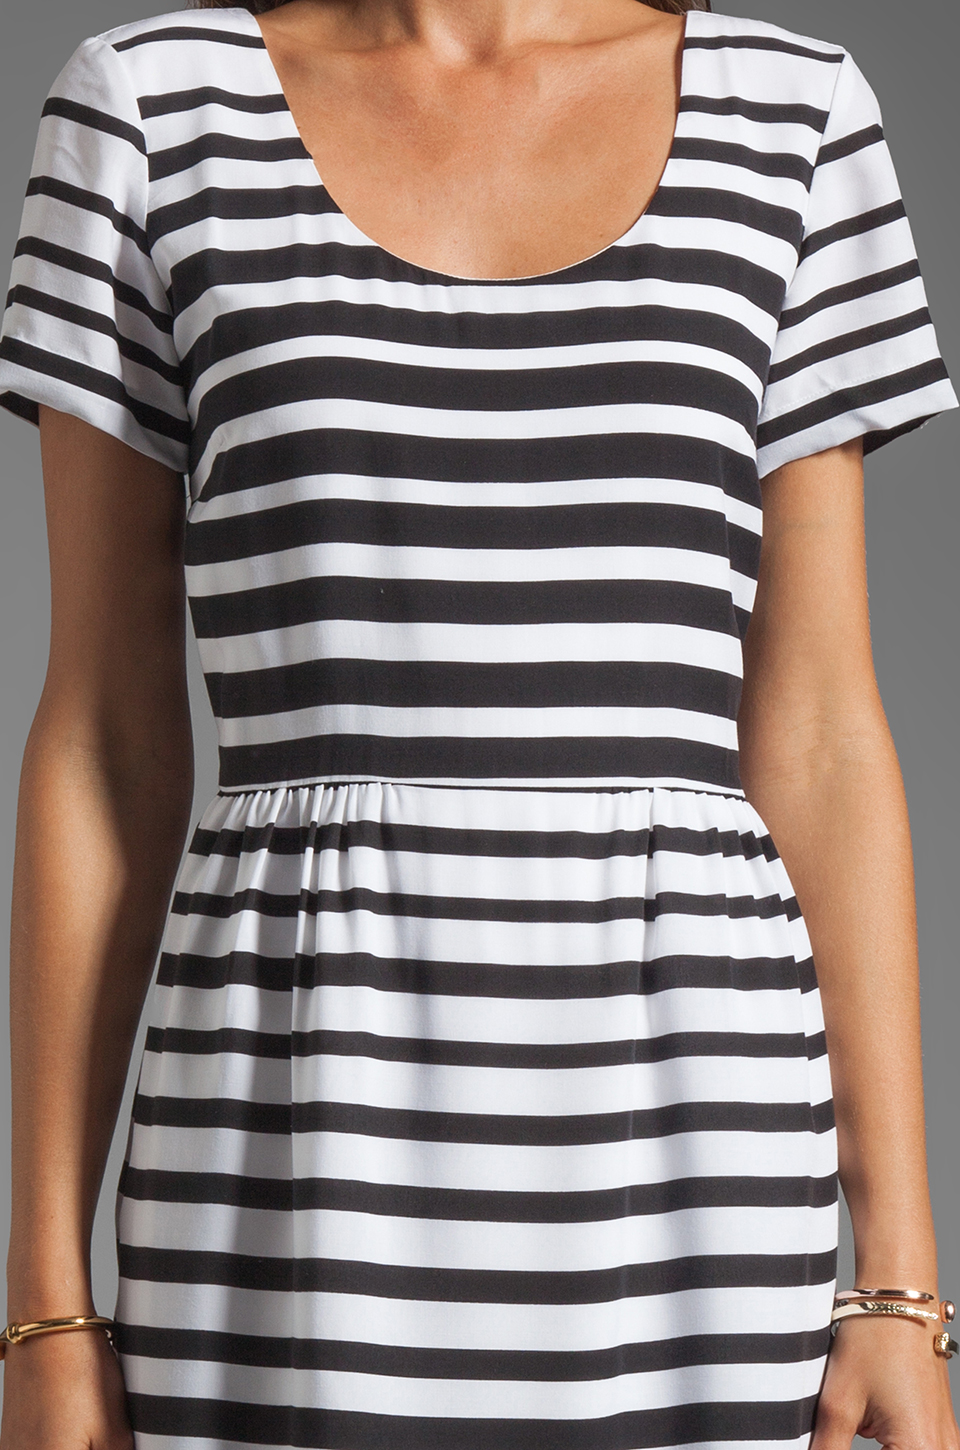 Dolce Vita Adelaide Ascending Stripe T-Shirt Dress in Black/White